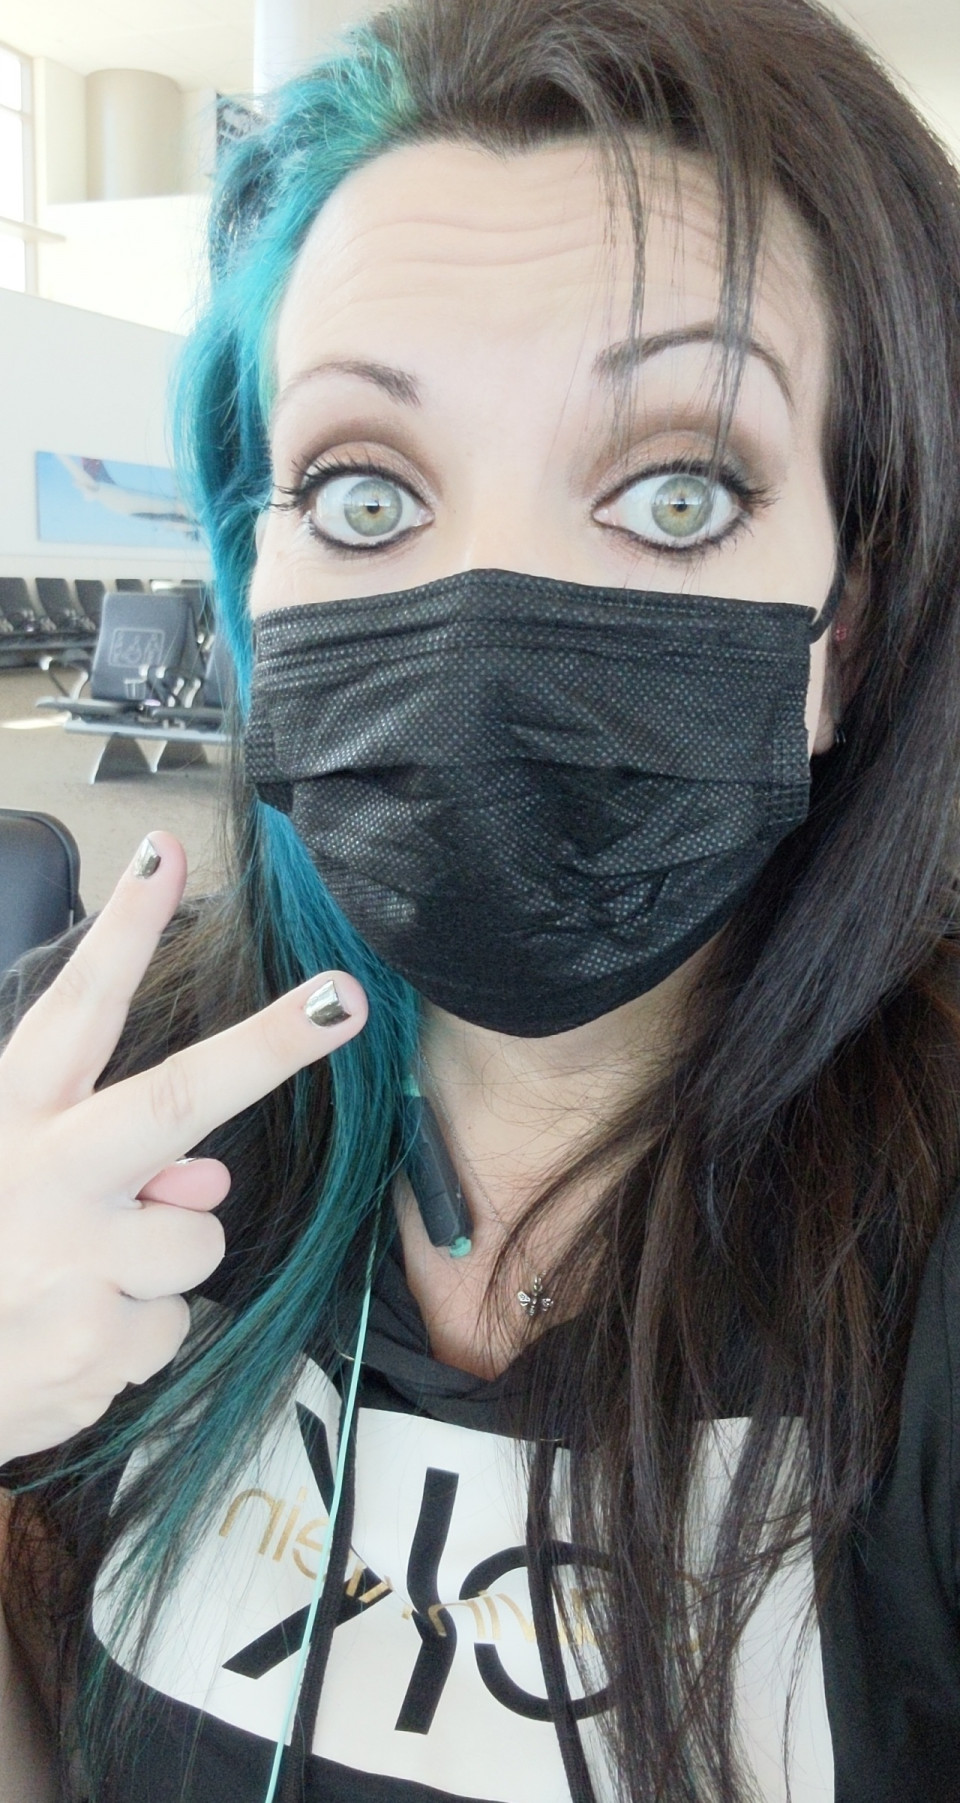 Obligatory airport selfie in SLC airport while waiting at the gate. :P